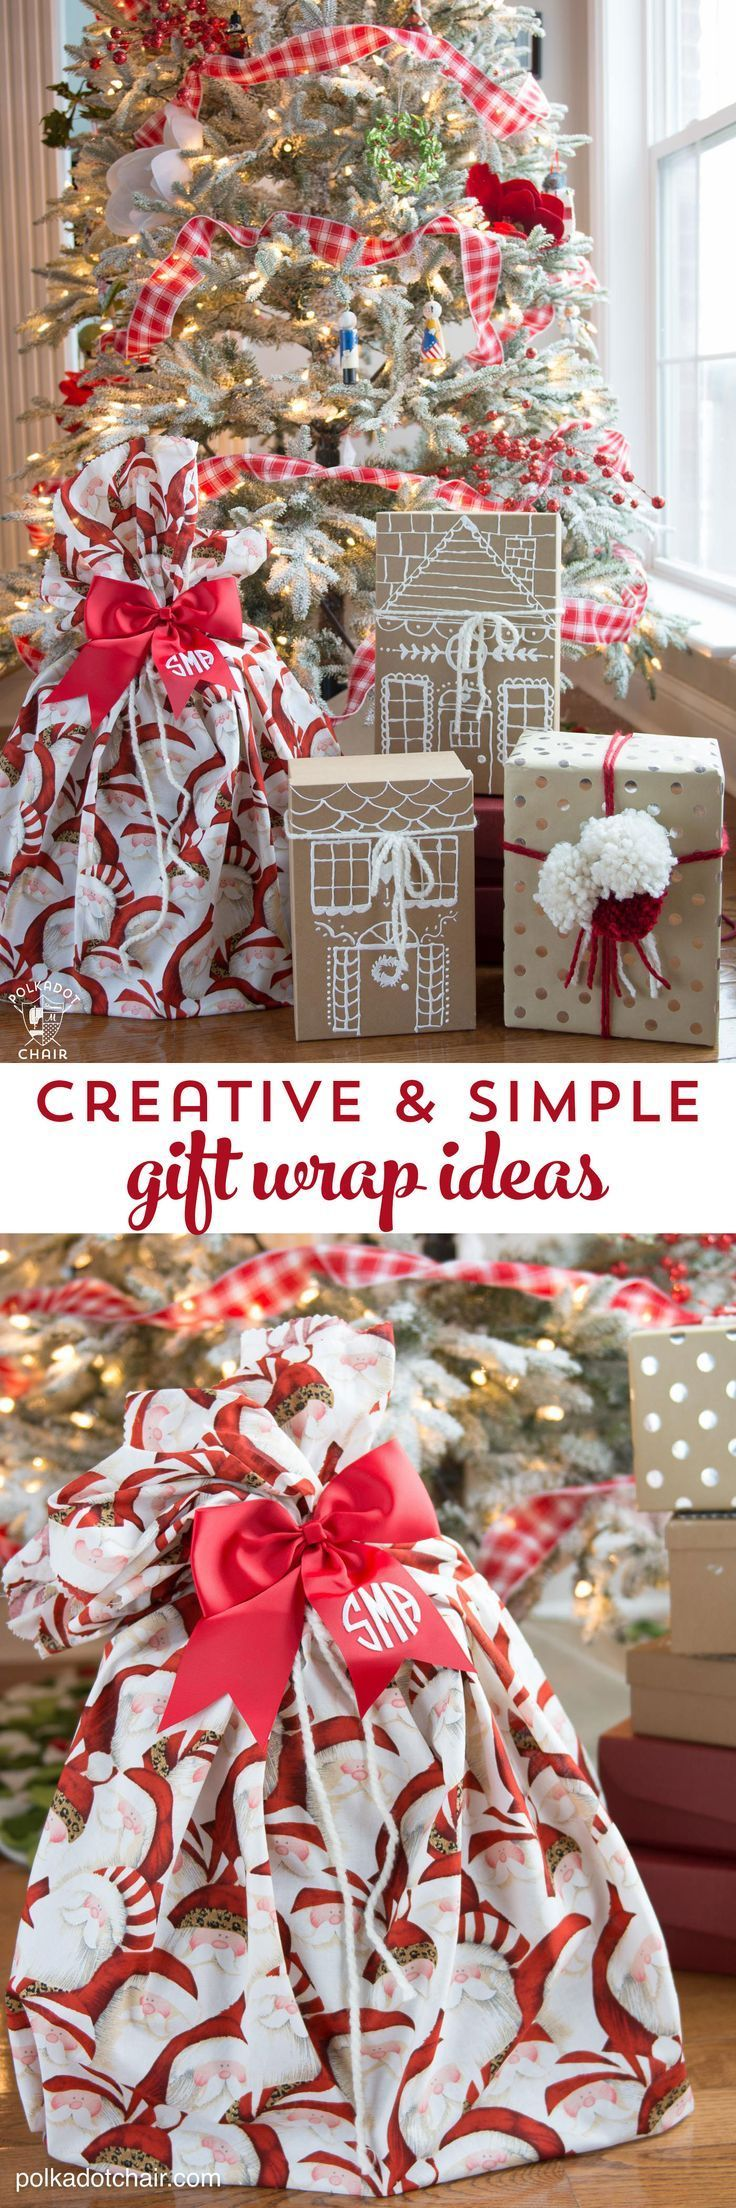 1033 Best Images About Wrapping Packing Ideas On Pinterest